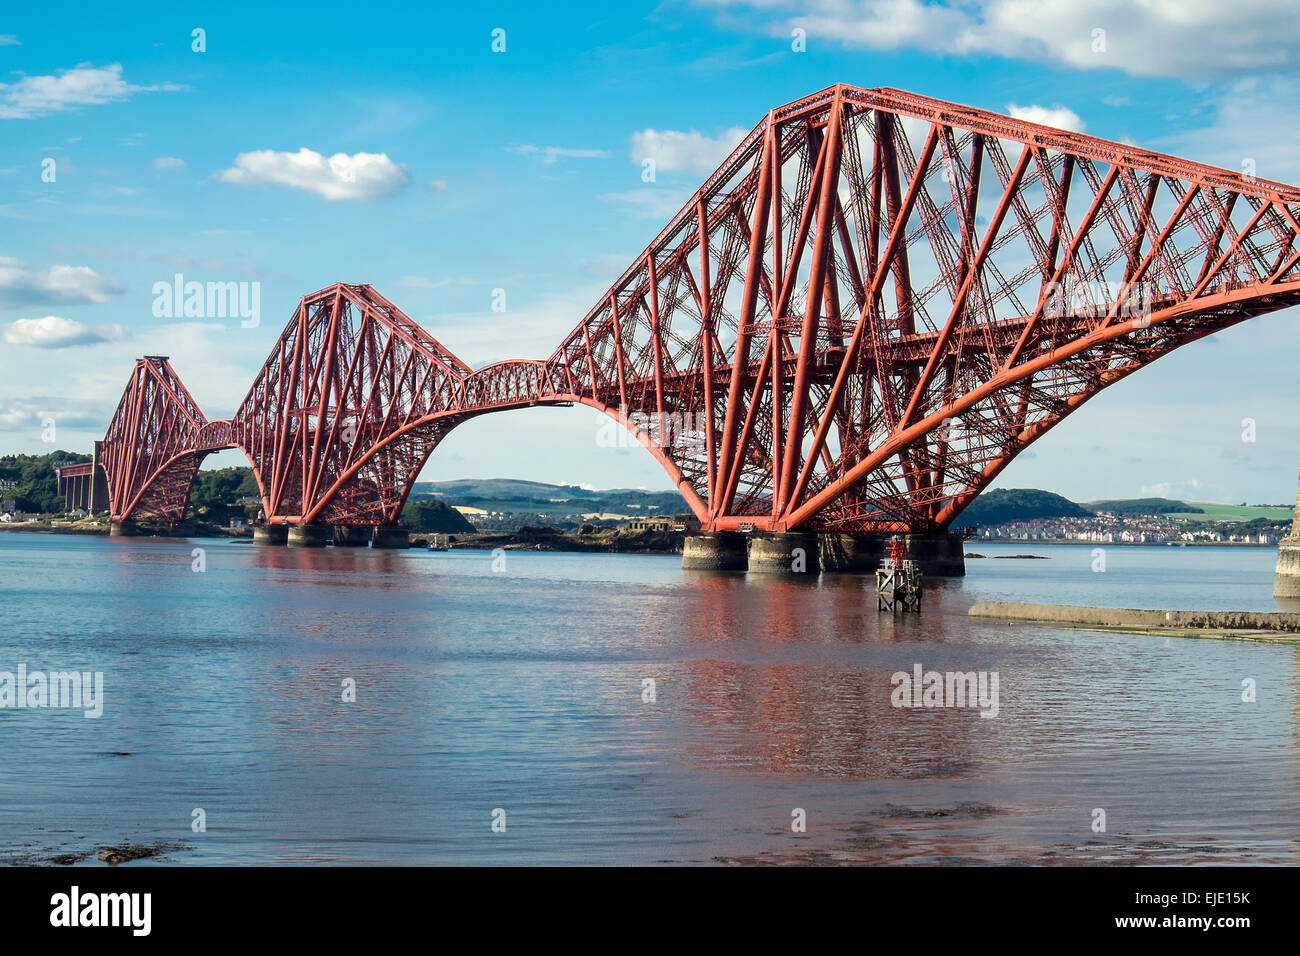 The impressing railway bridge over the Firth of Forth in Scotland - Stock Image